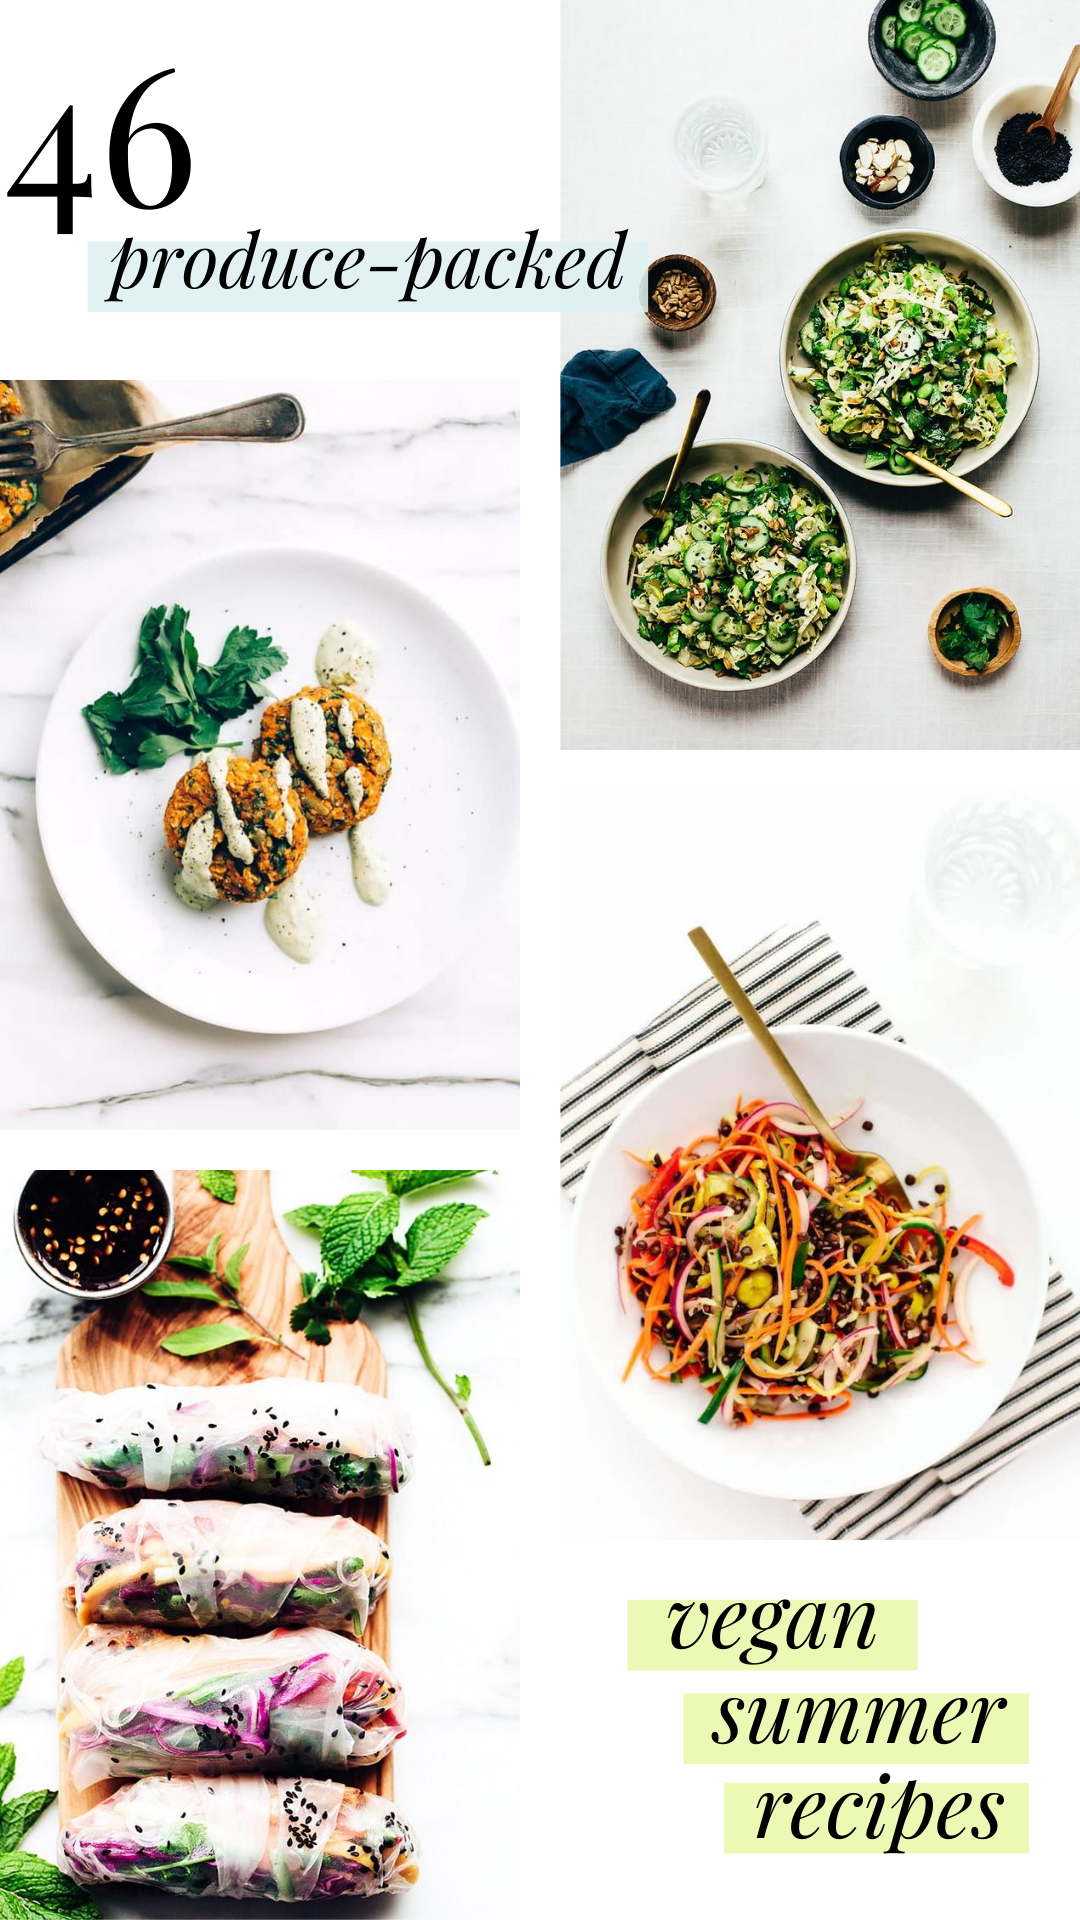 Vegan Summer Recipes Roundup